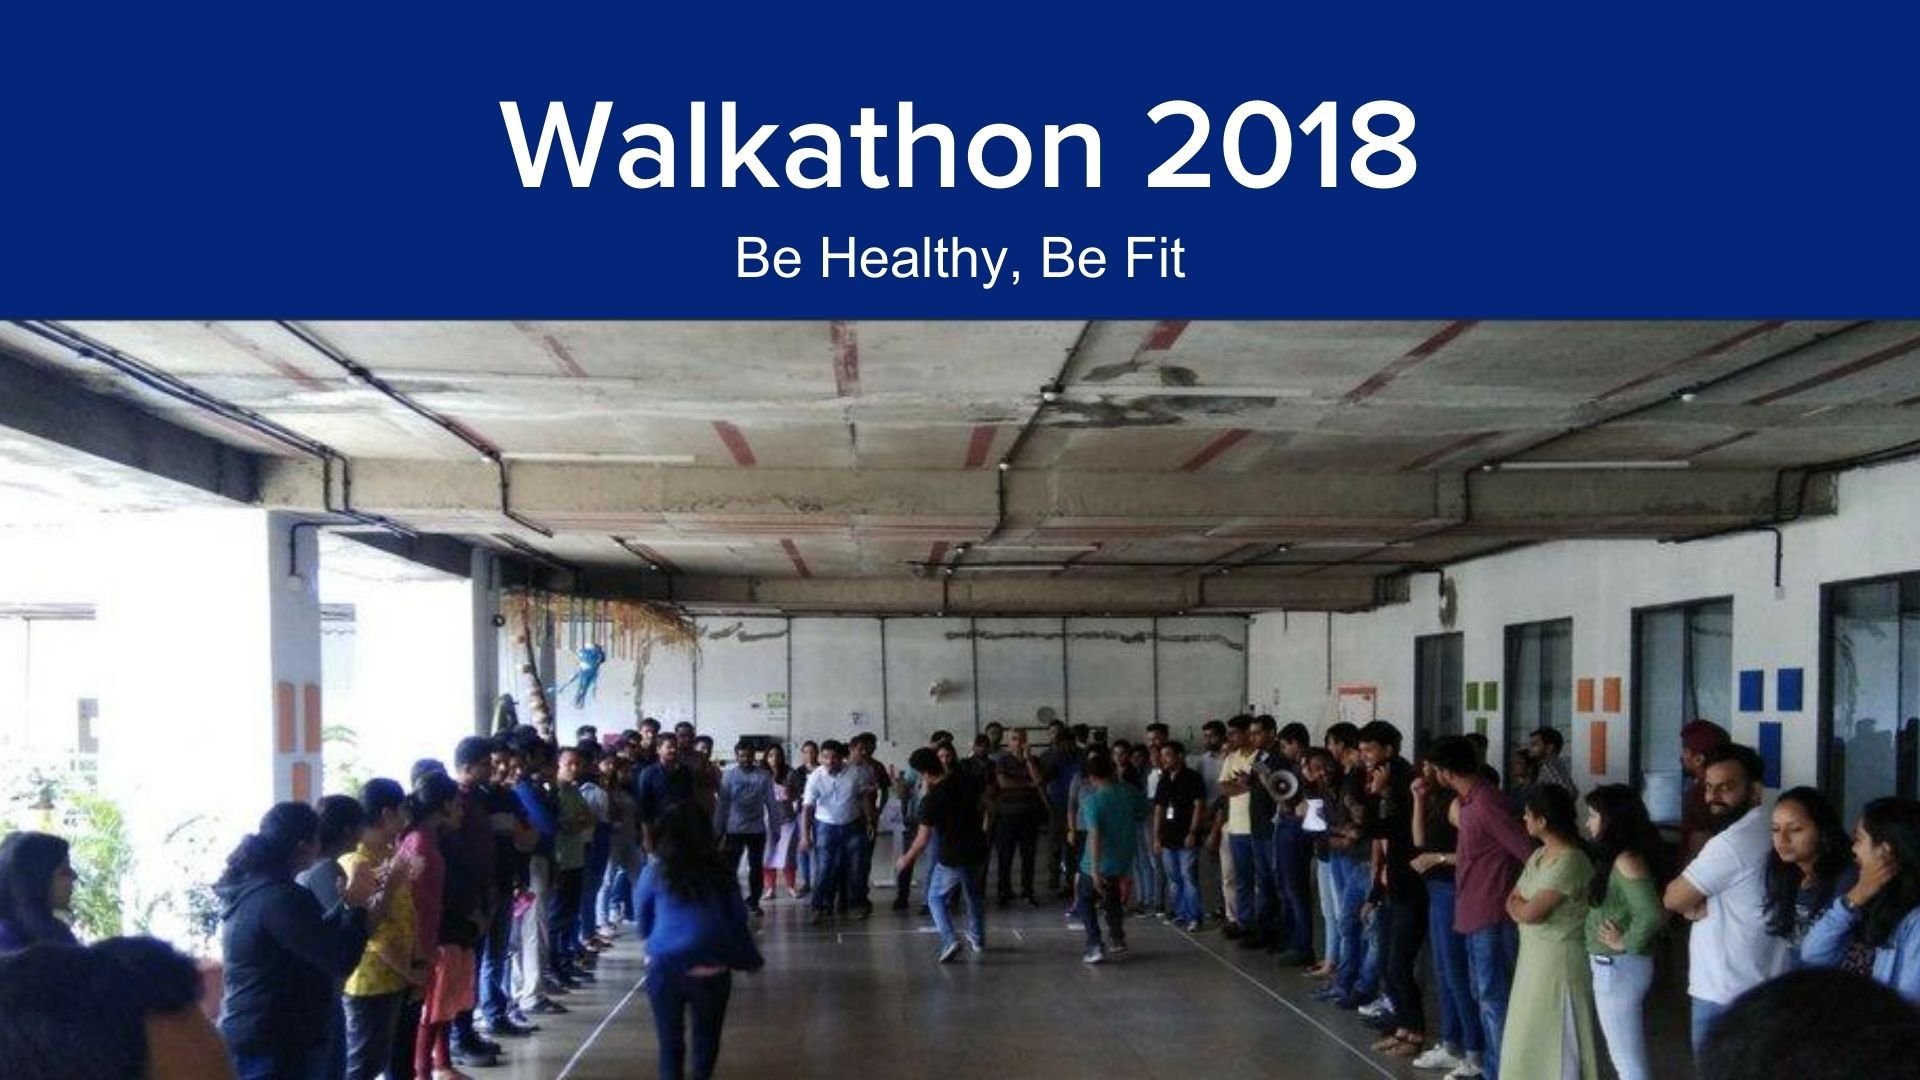 Walkathon 2018